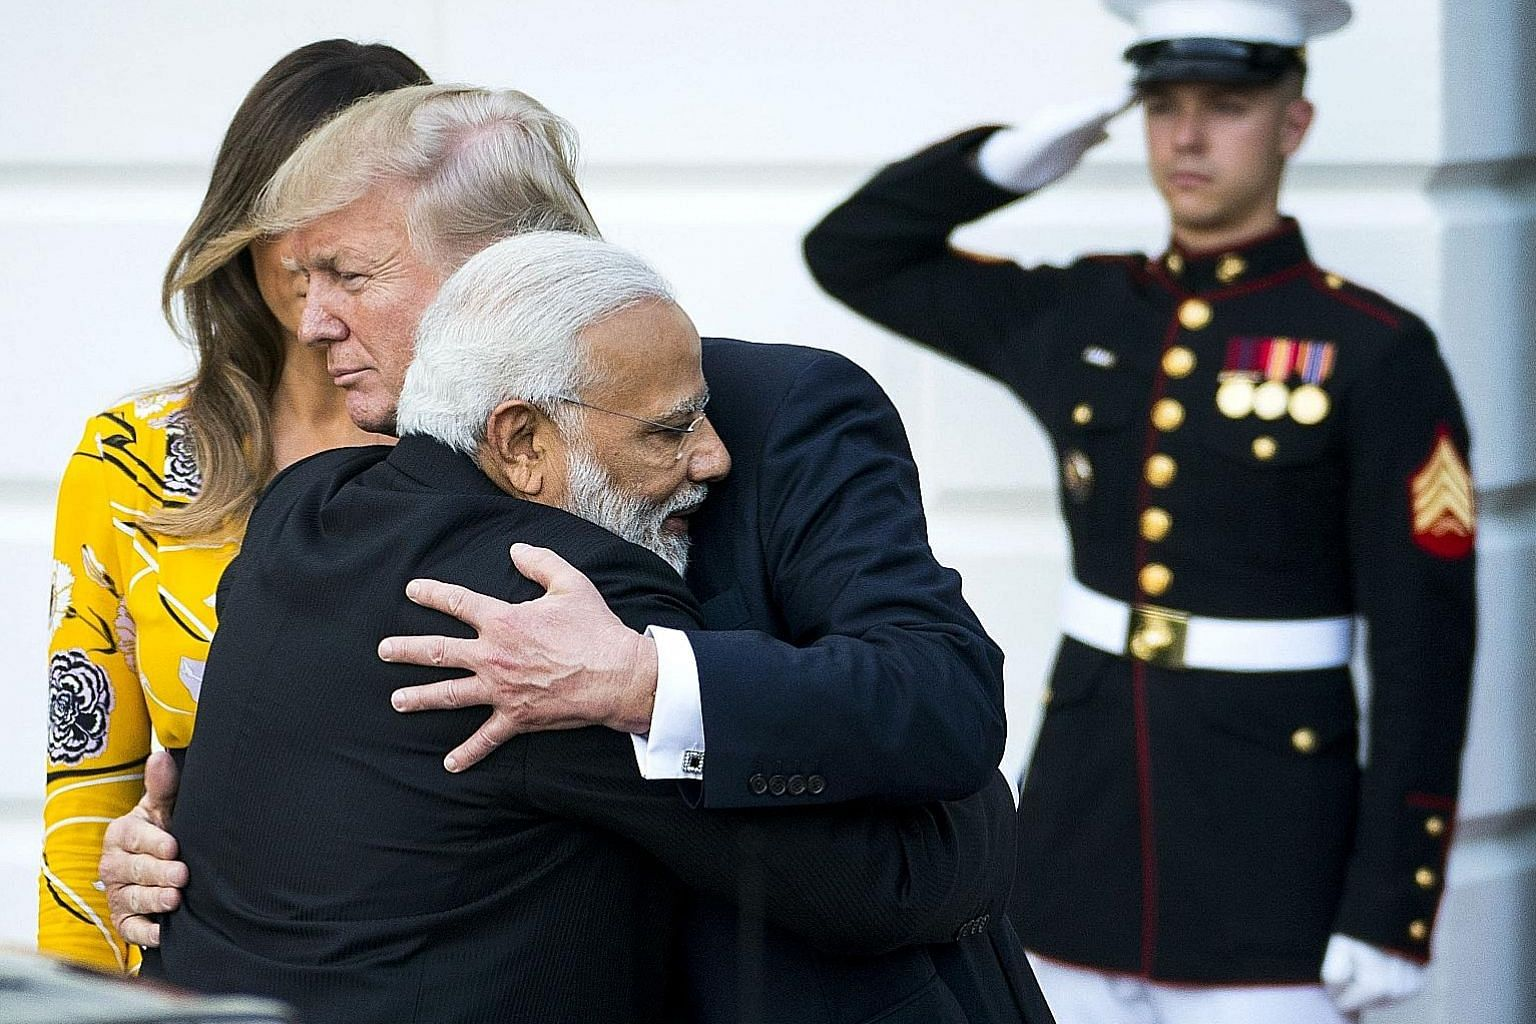 Indian Prime Minister Narendra Modi and US President Donald Trump exchanging a hug following their dinner at the White House on Monday. The Indian leader is known to hug leaders he gets on with.